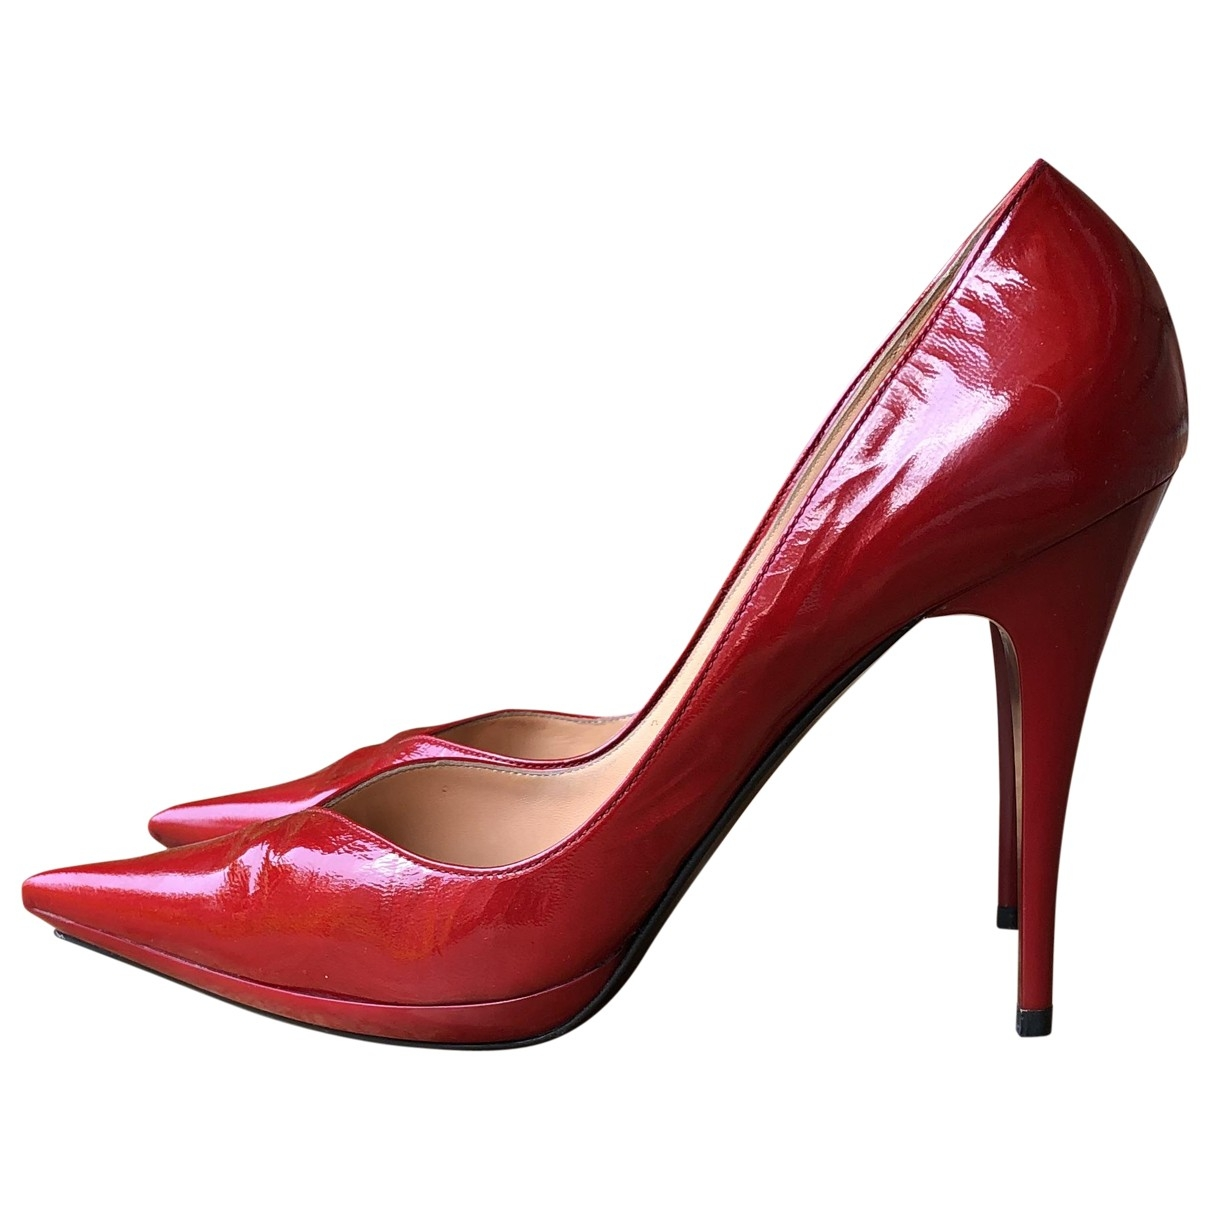 Casadei \N Red Patent leather Heels for Women 40 EU